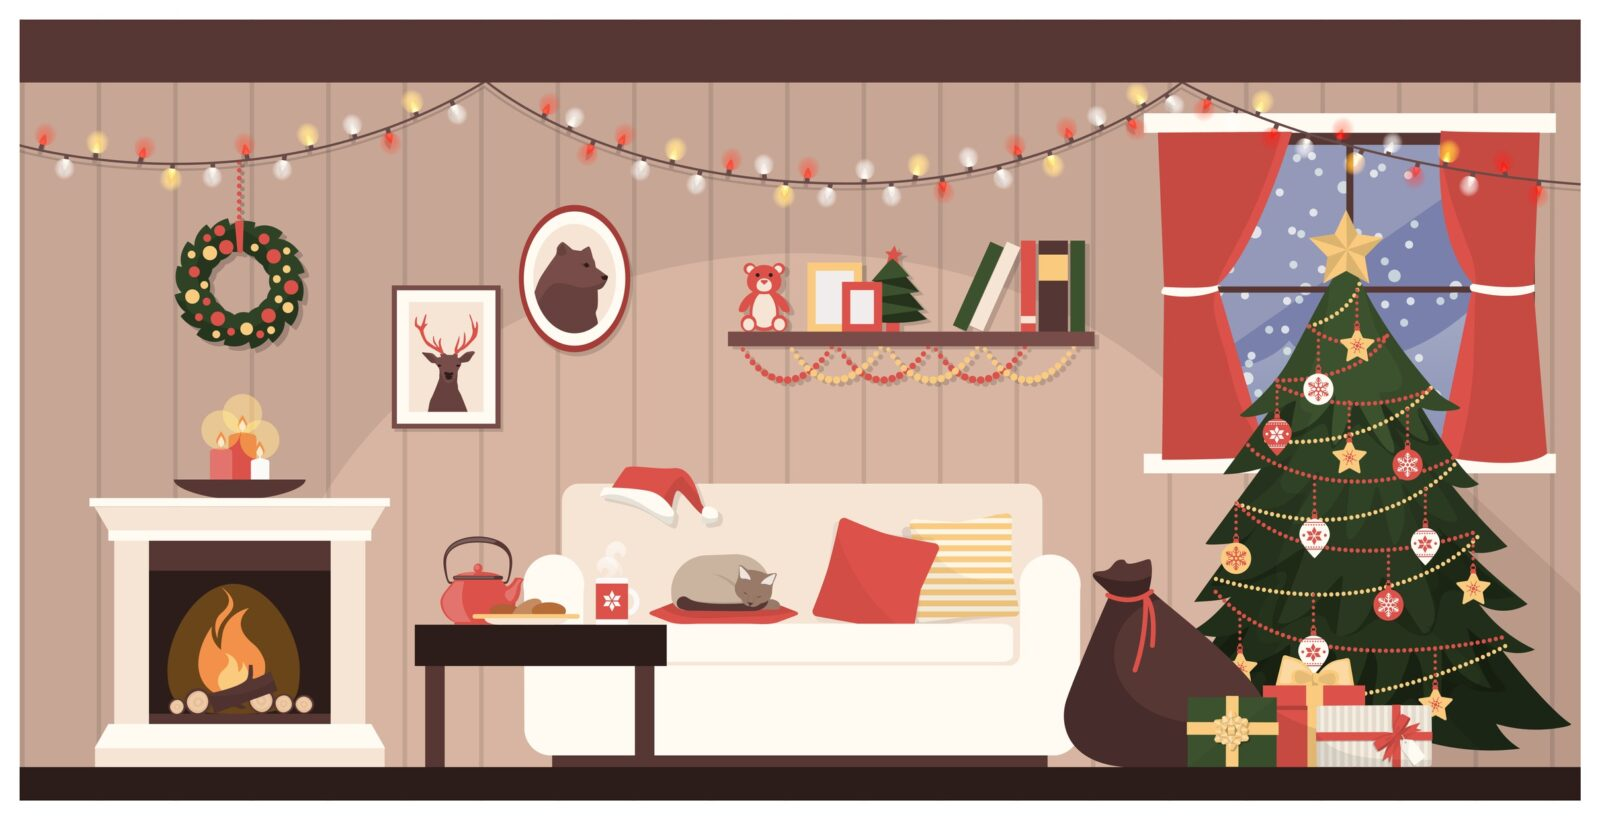 Christmas decorations, fireplace, Christmas Tree, Lights, Couch, Bag of Toys, Christmas wreath